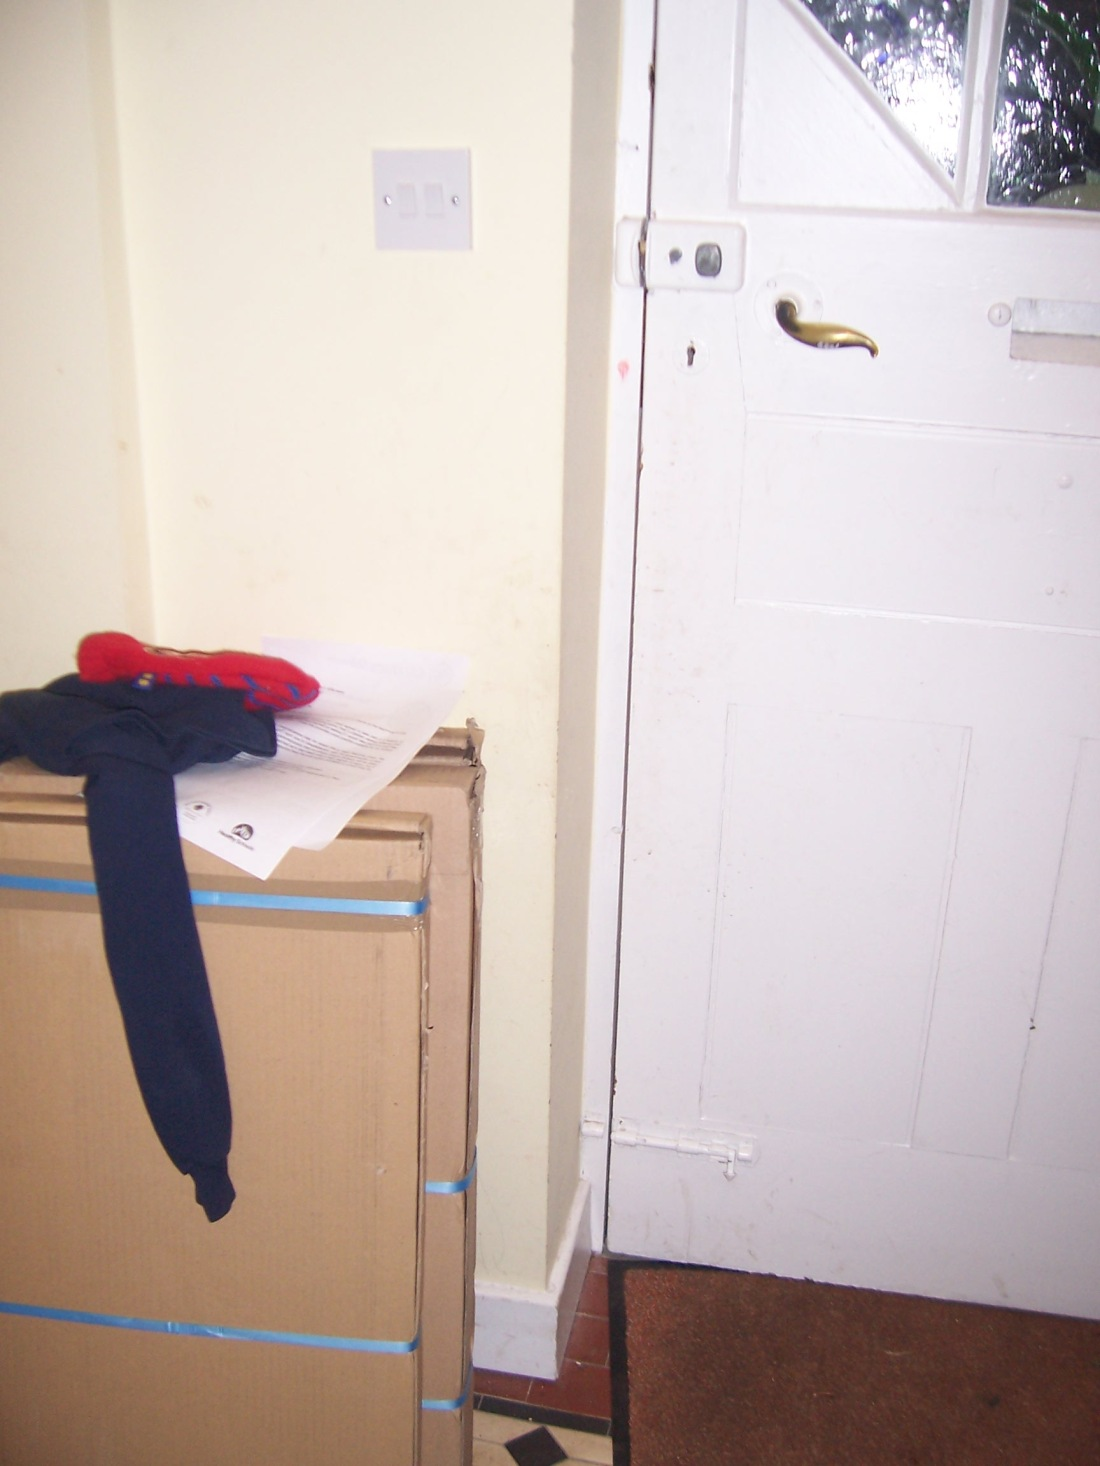 Boxes leaning by front door with jumper and papers resting on them